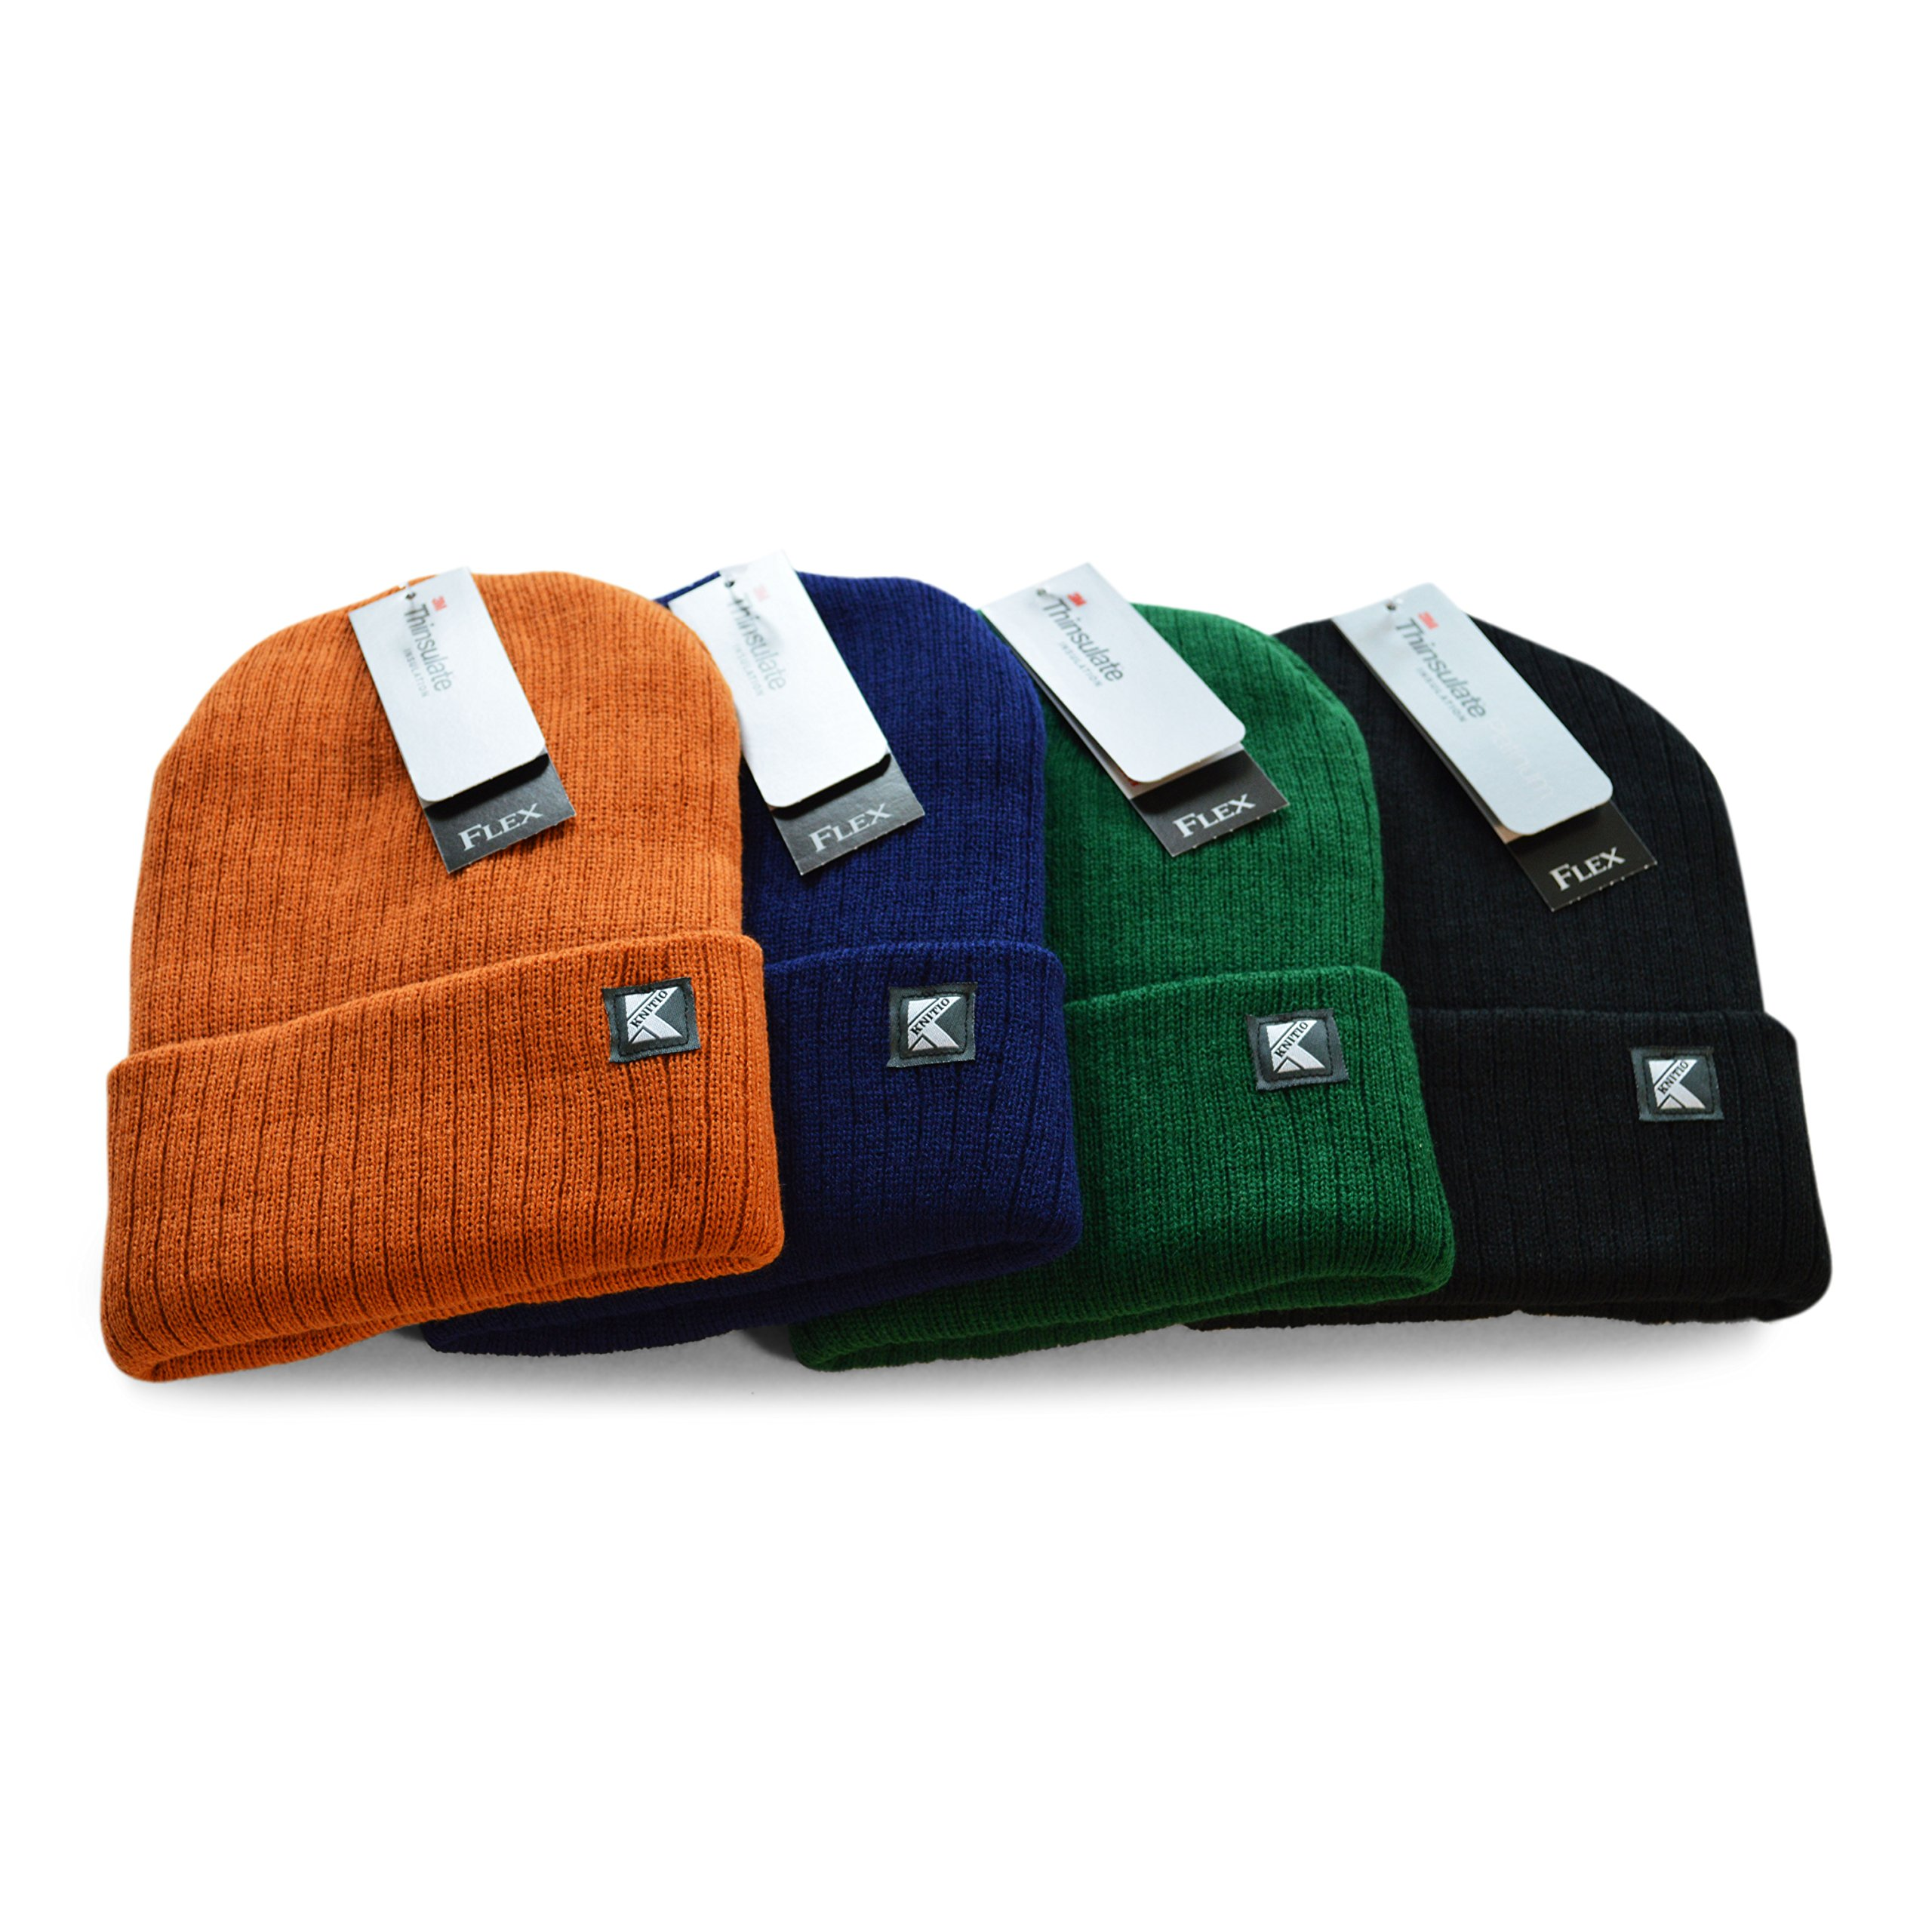 Knitio Men's Cuffed Winter Beanie With Thinsulate | Warm, Comfortable, Durable Winter Hats For Men | Navy by Knitio (Image #4)